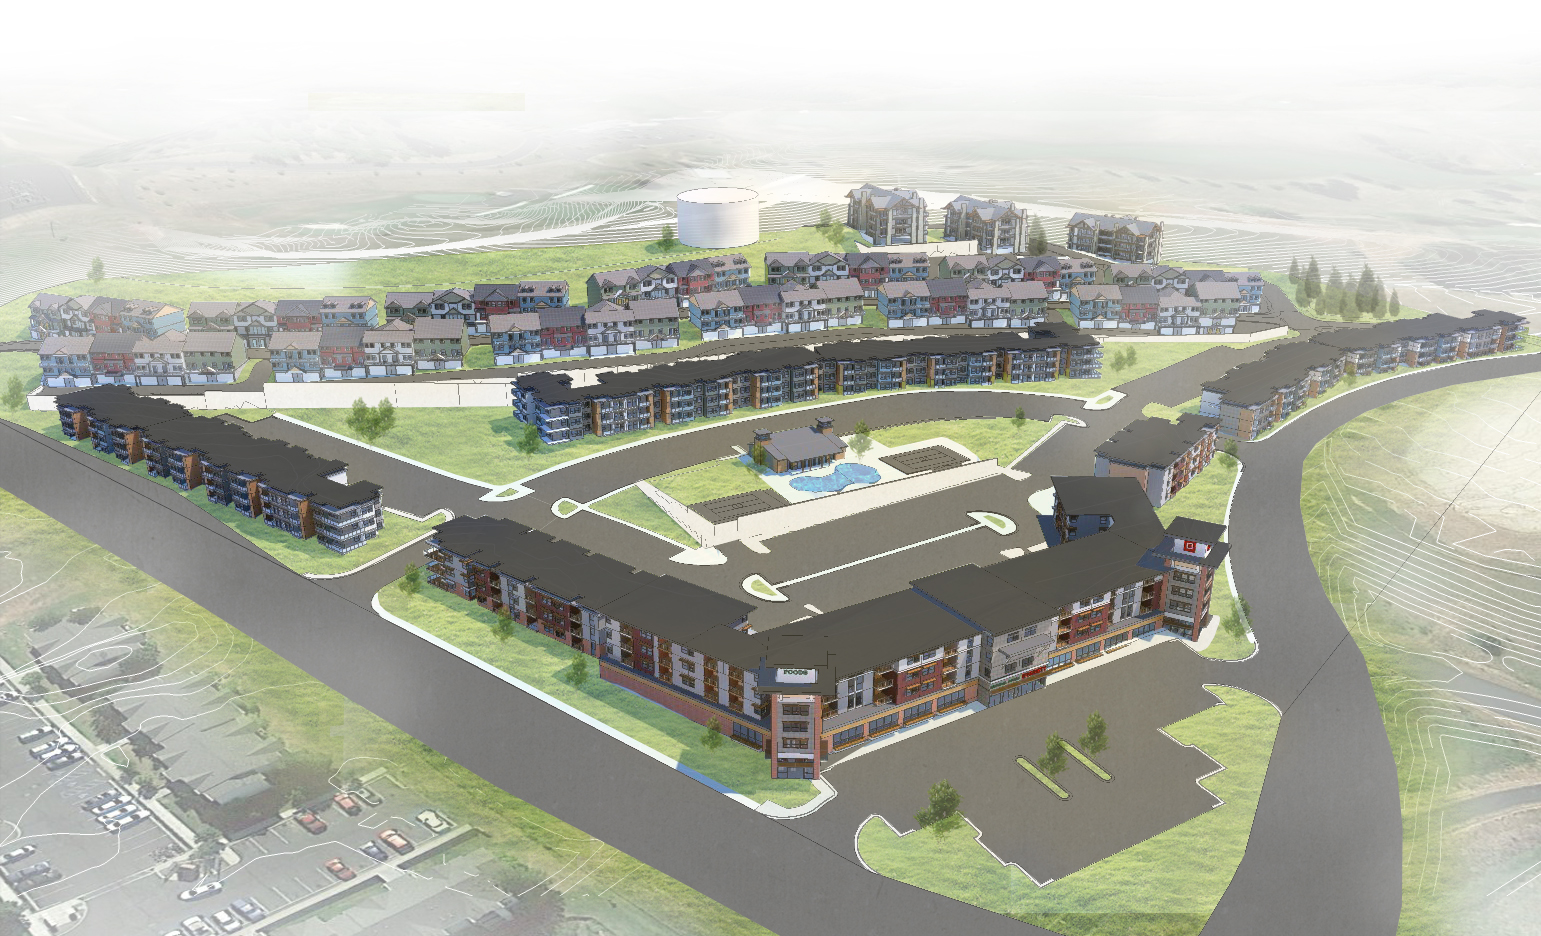 Washington State University Fairway Housing Development